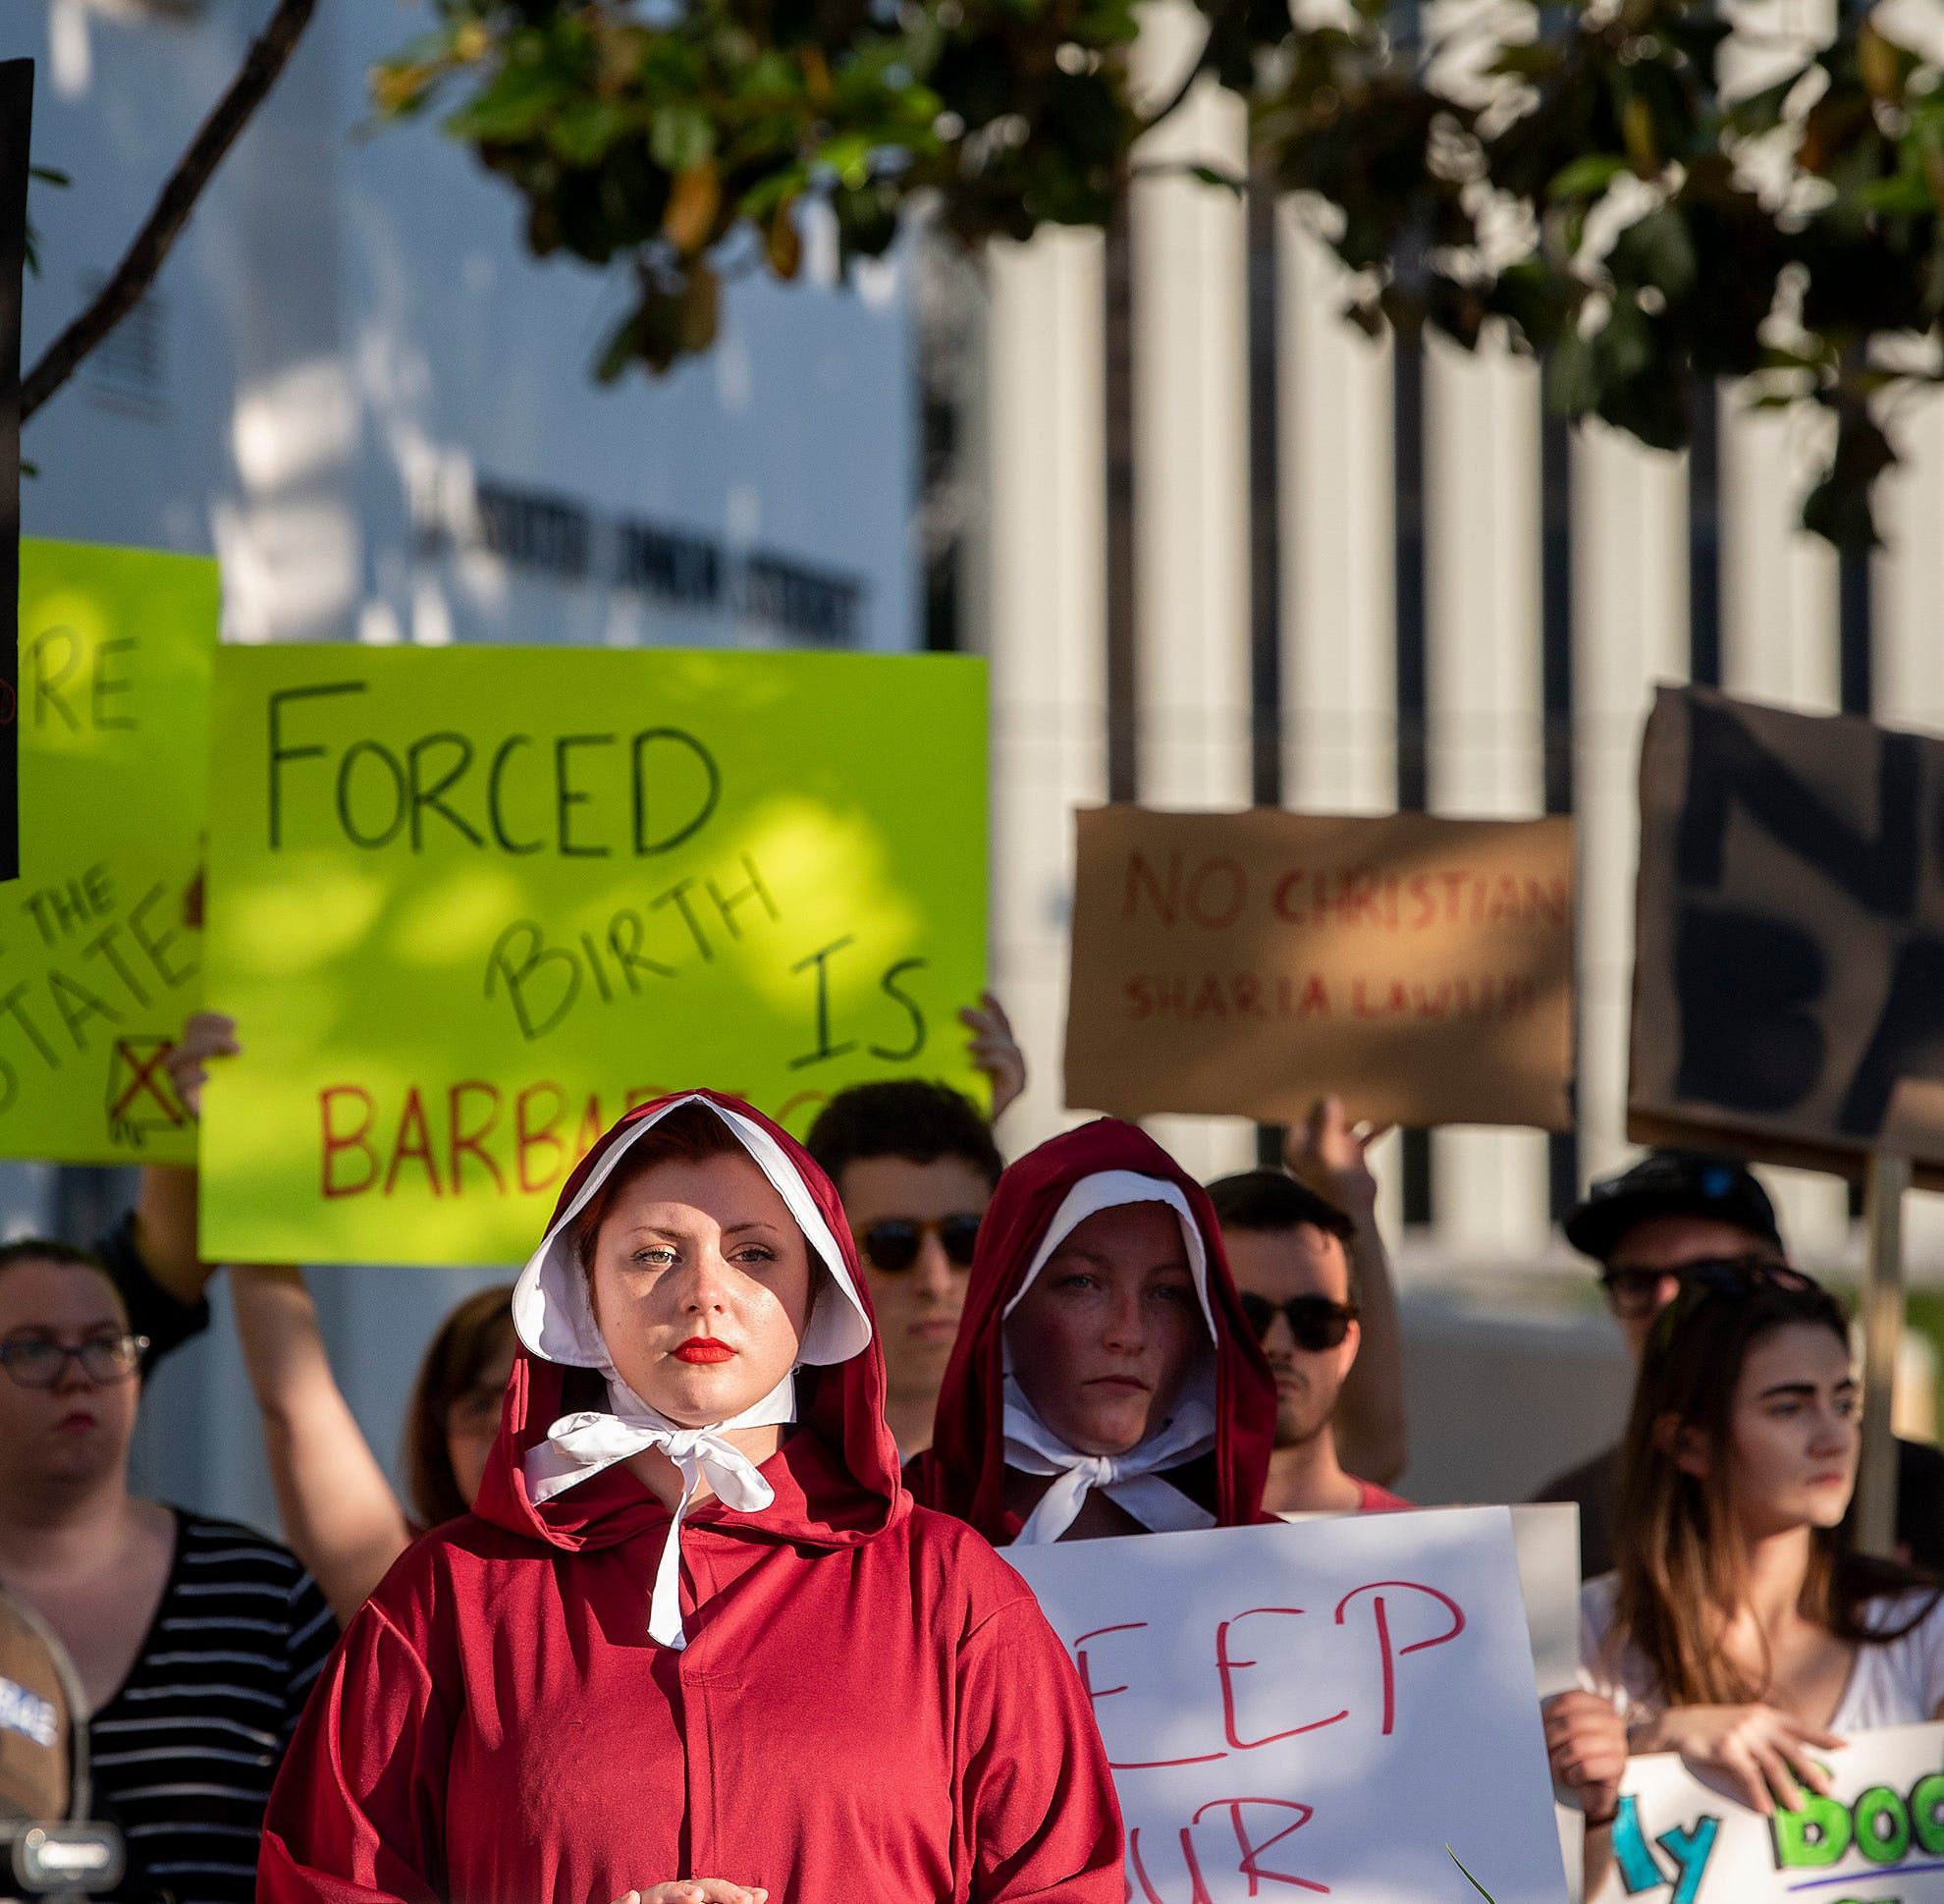 Margeaux Hartline, dressed as a handmaid, protests against a ban on nearly all abortions outside of the Alabama State House in Montgomery, Ala., on May 14, 2019.